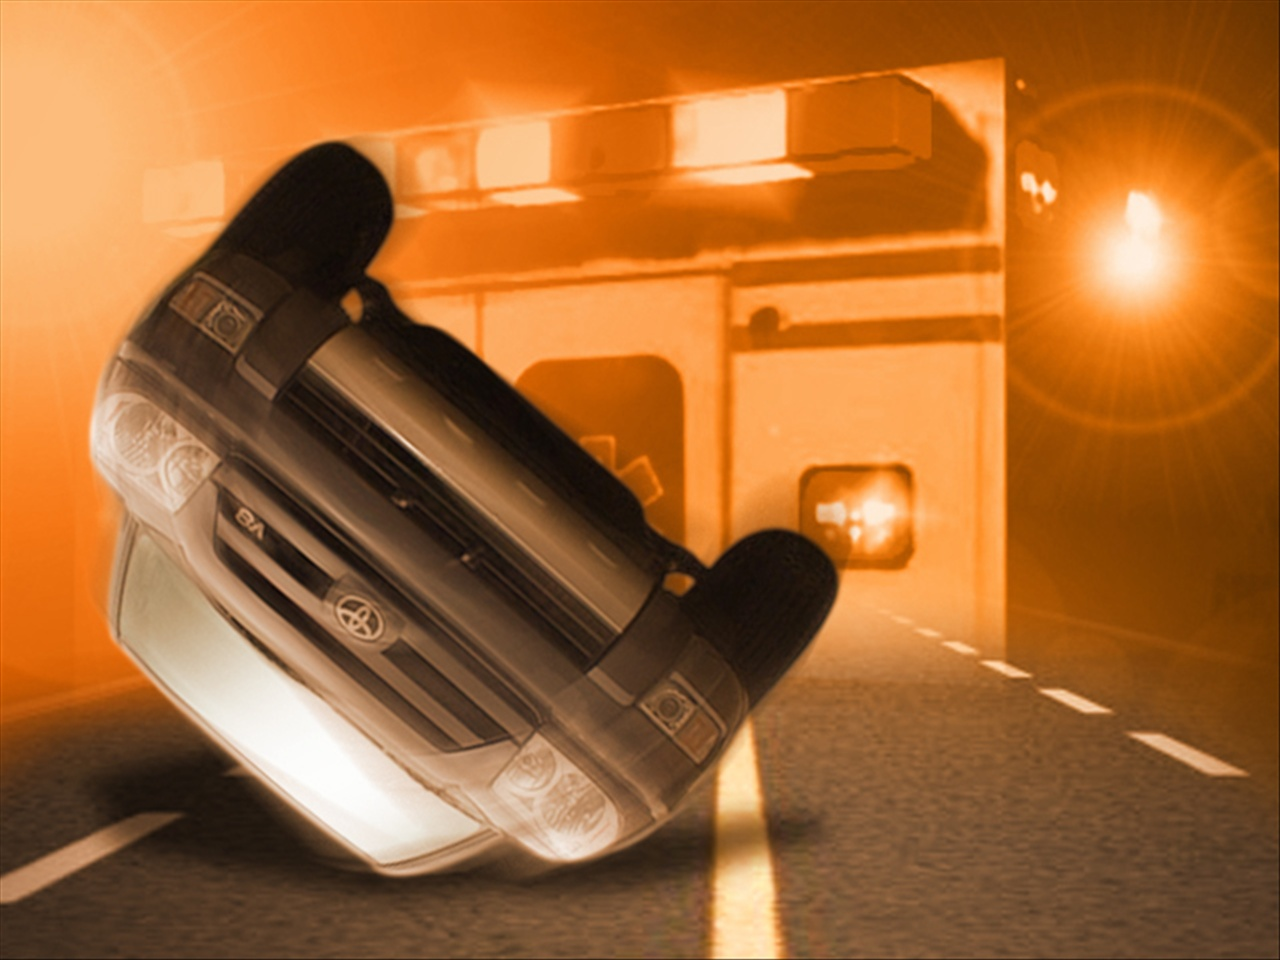 A rollover crash in Morgan County injures passenger